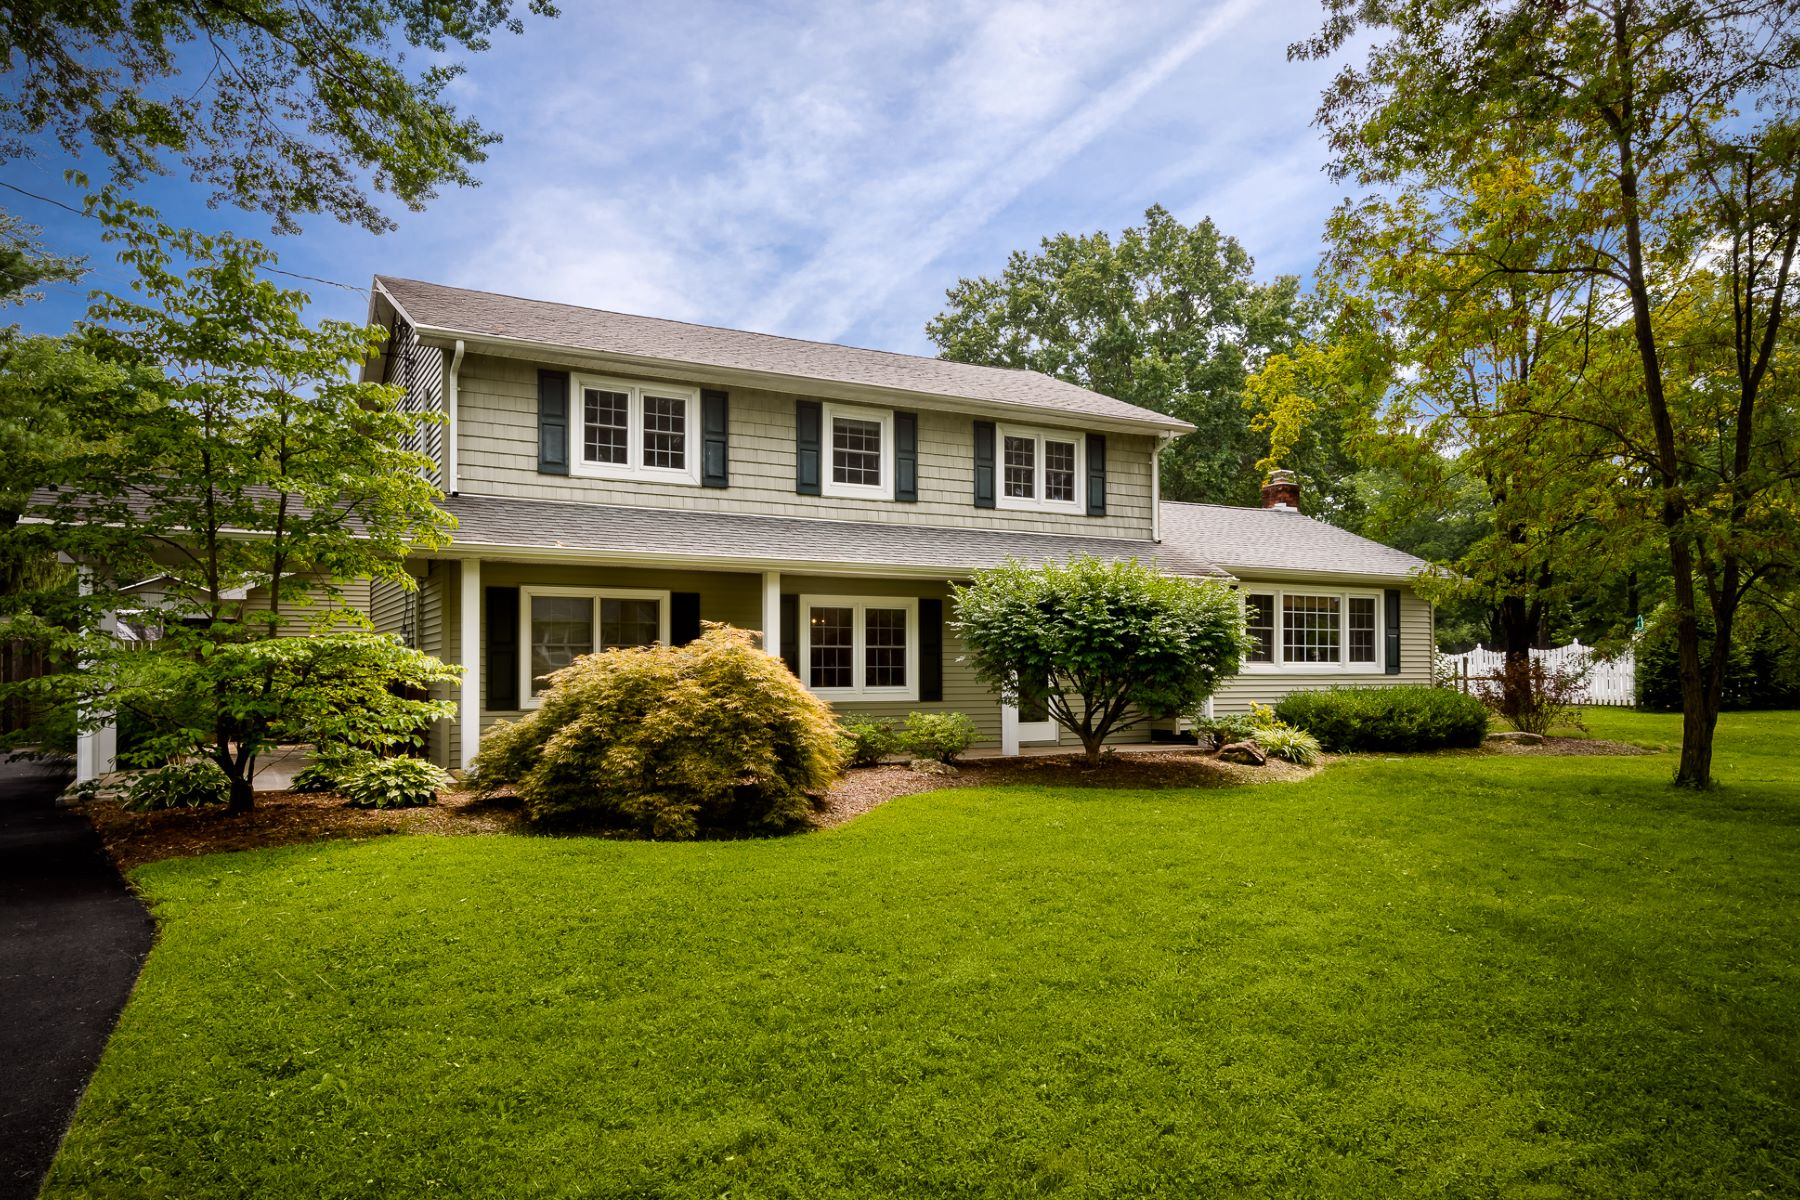 Property için Satış at Spacious and Bright, a Millstone Stand Out 17 Van Doren Drive, Hillsborough, New Jersey 08844 Amerika Birleşik Devletleri